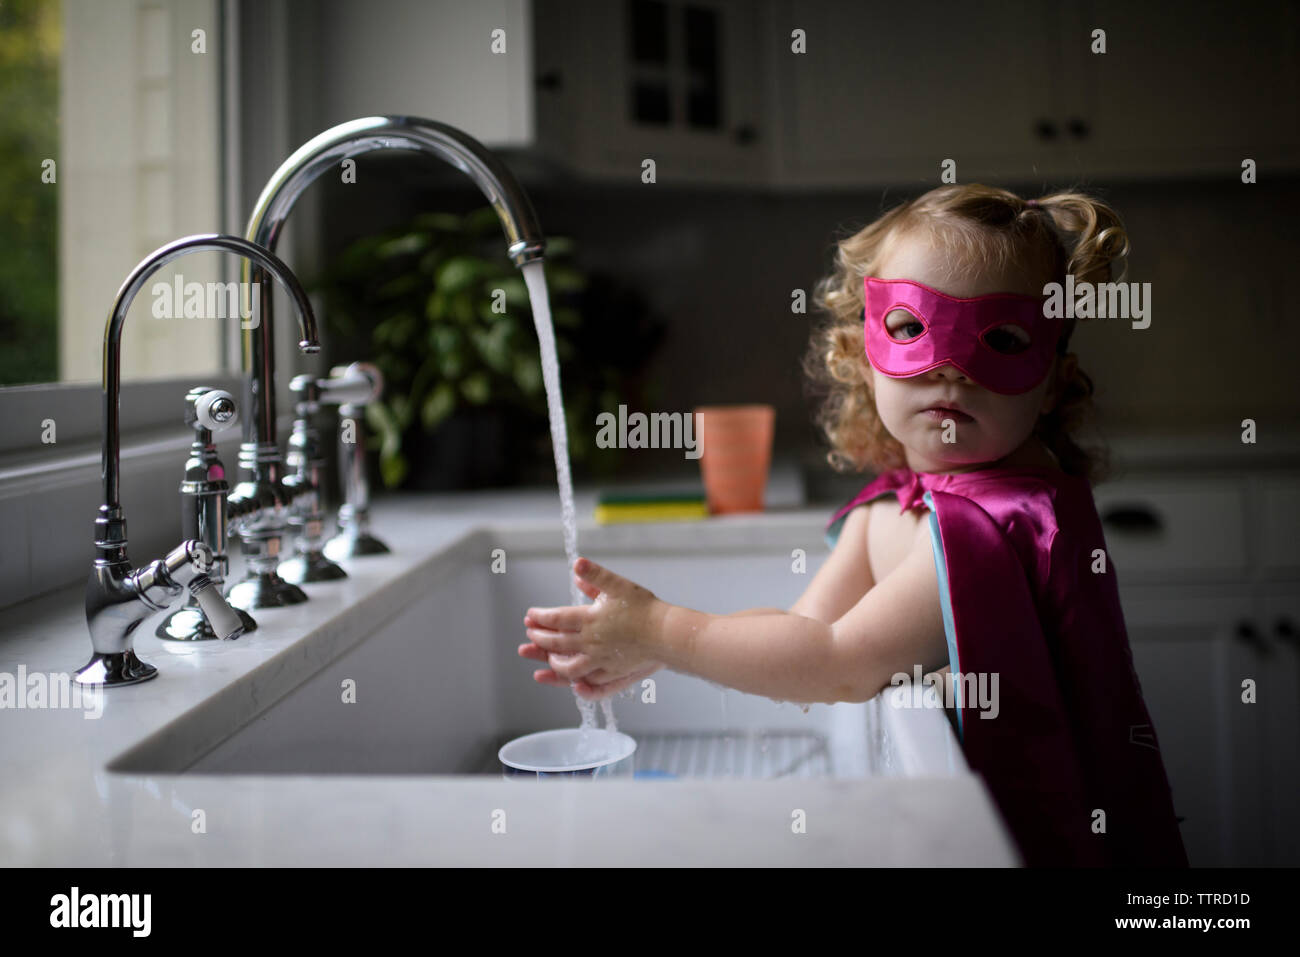 Portrait of girl wearing superhero costume washing hands in kitchen sink while standing at home Stock Photo